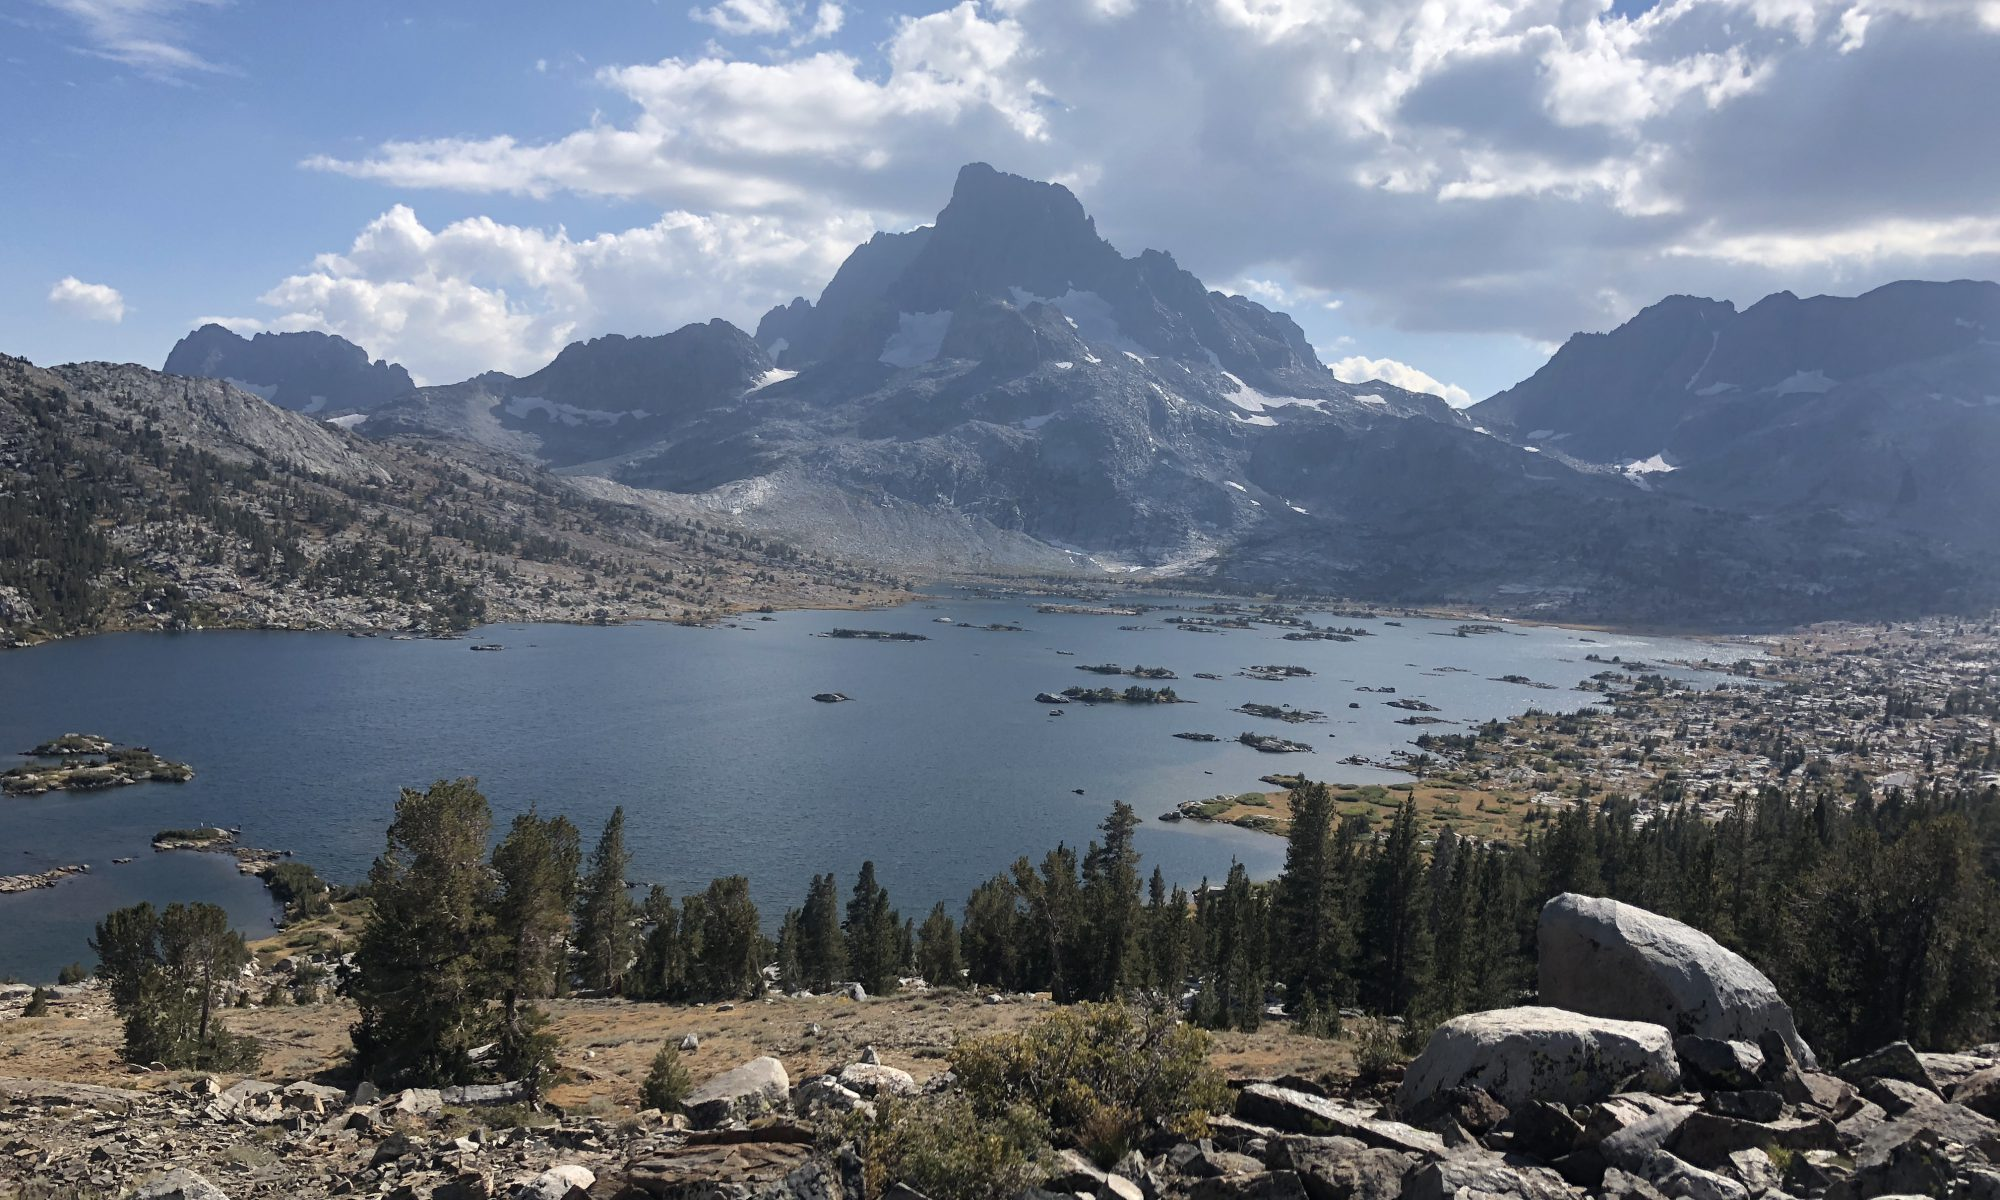 Thousand Islands Lake north of Mammoth Lakes, CA from the Pacific Crest Trail